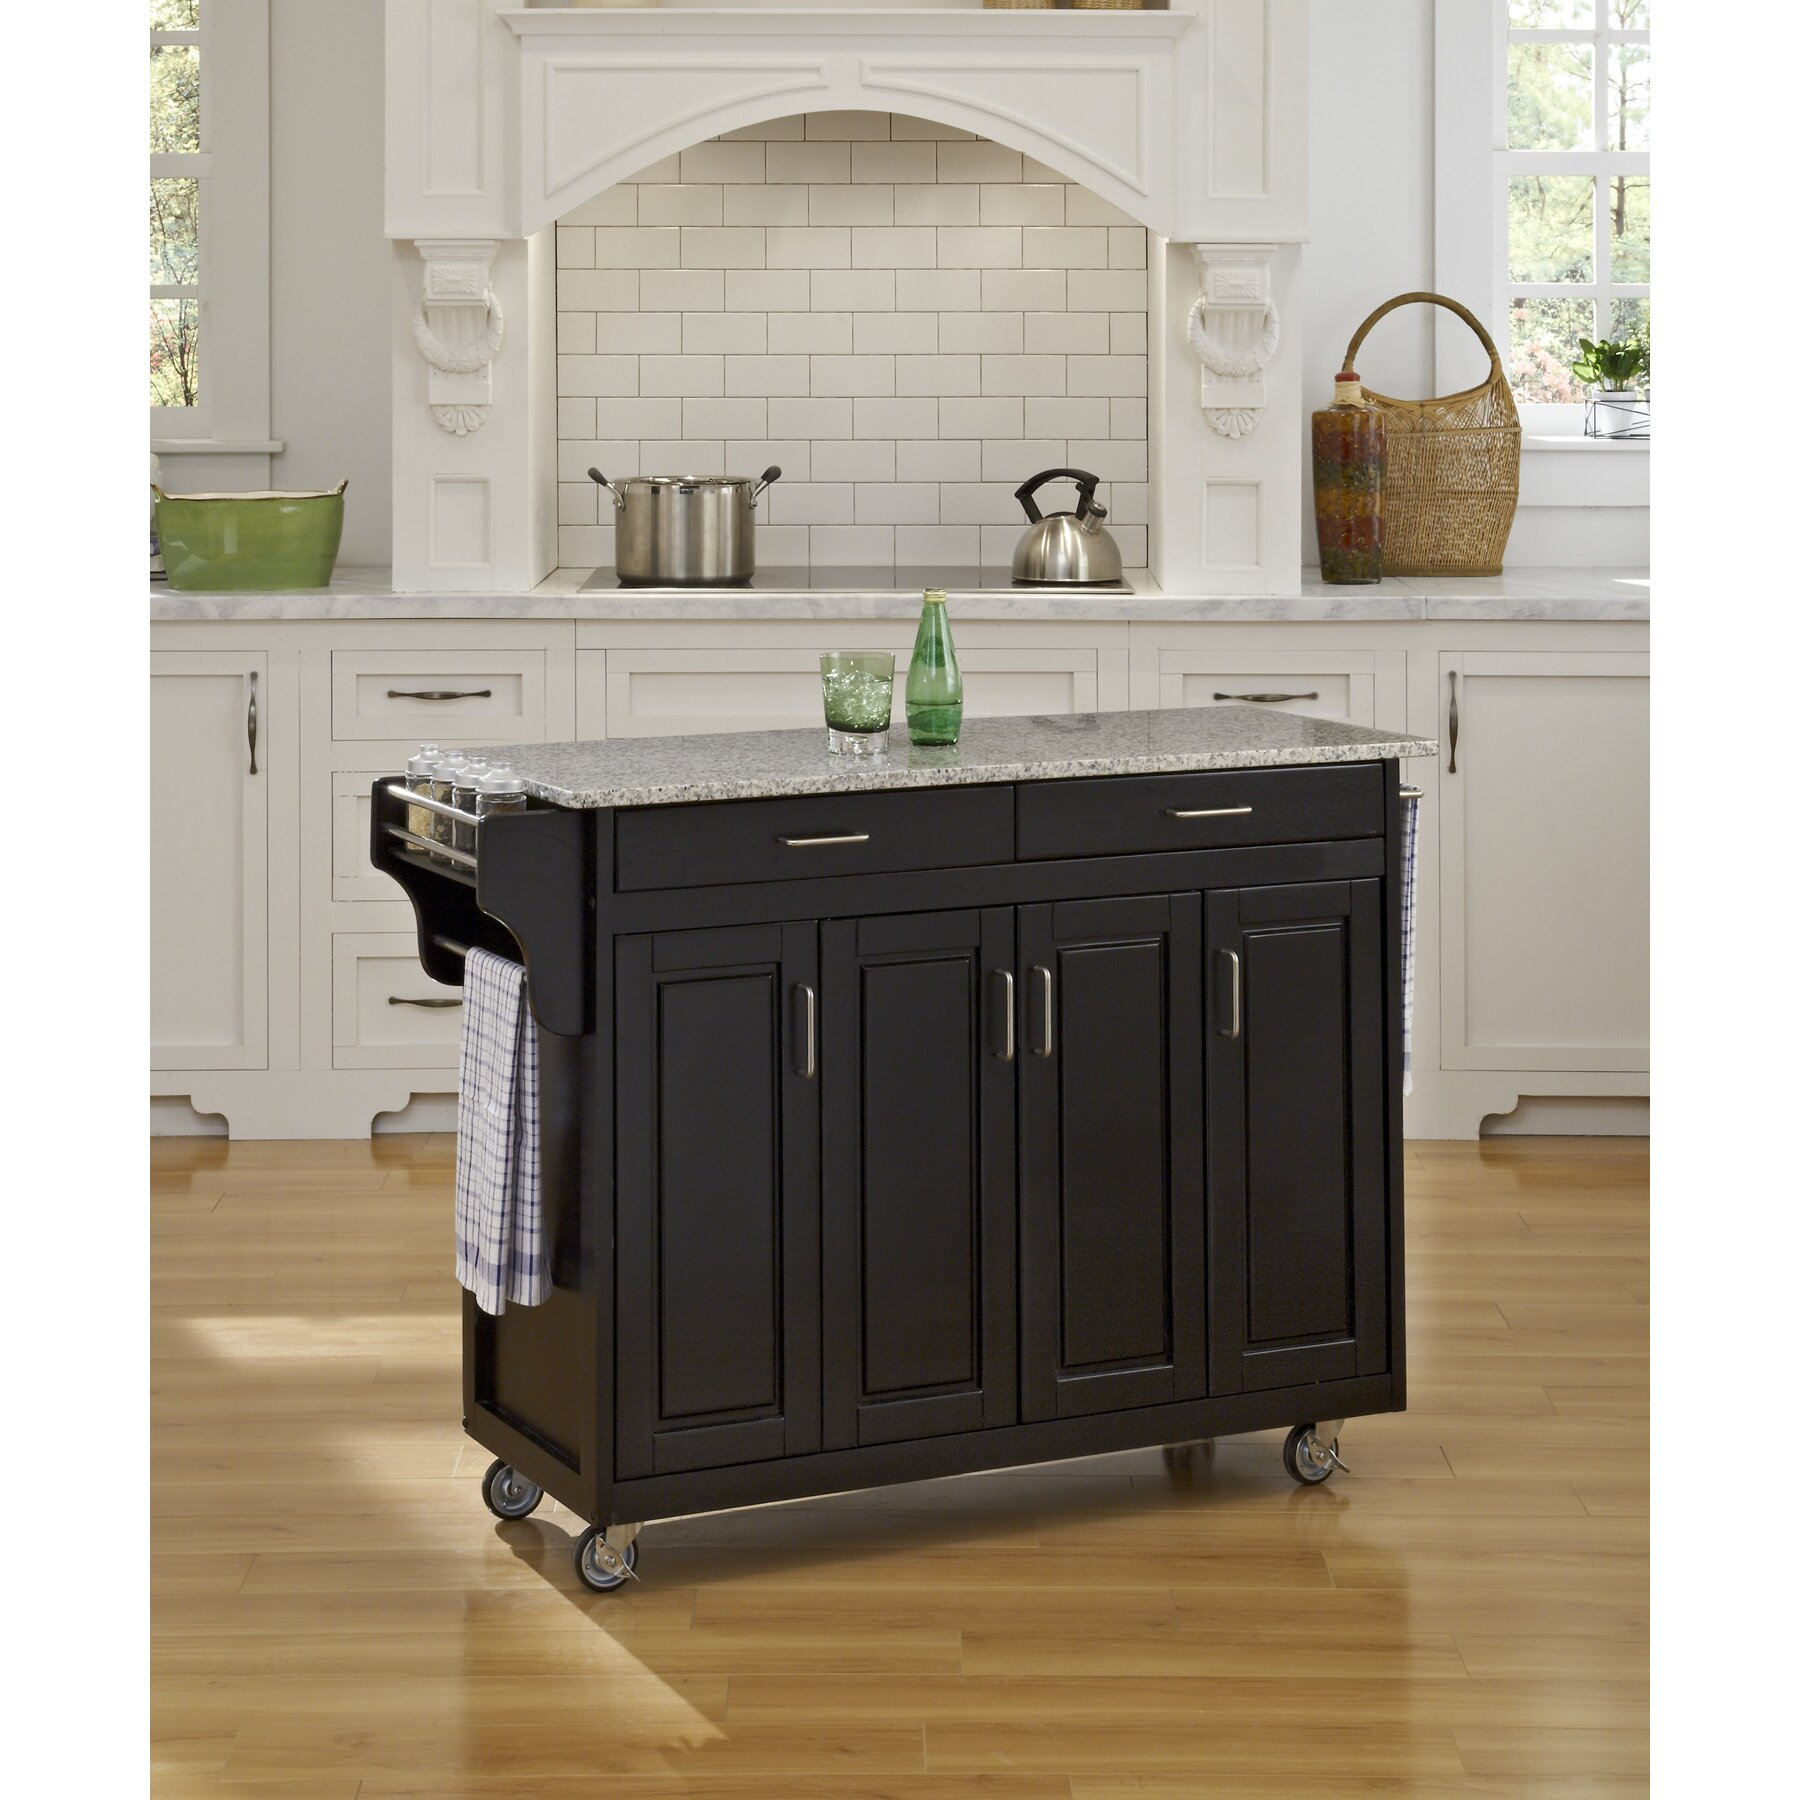 Kitchen Island With Granite Top: Create-a-Cart Kitchen Island With Granite Top